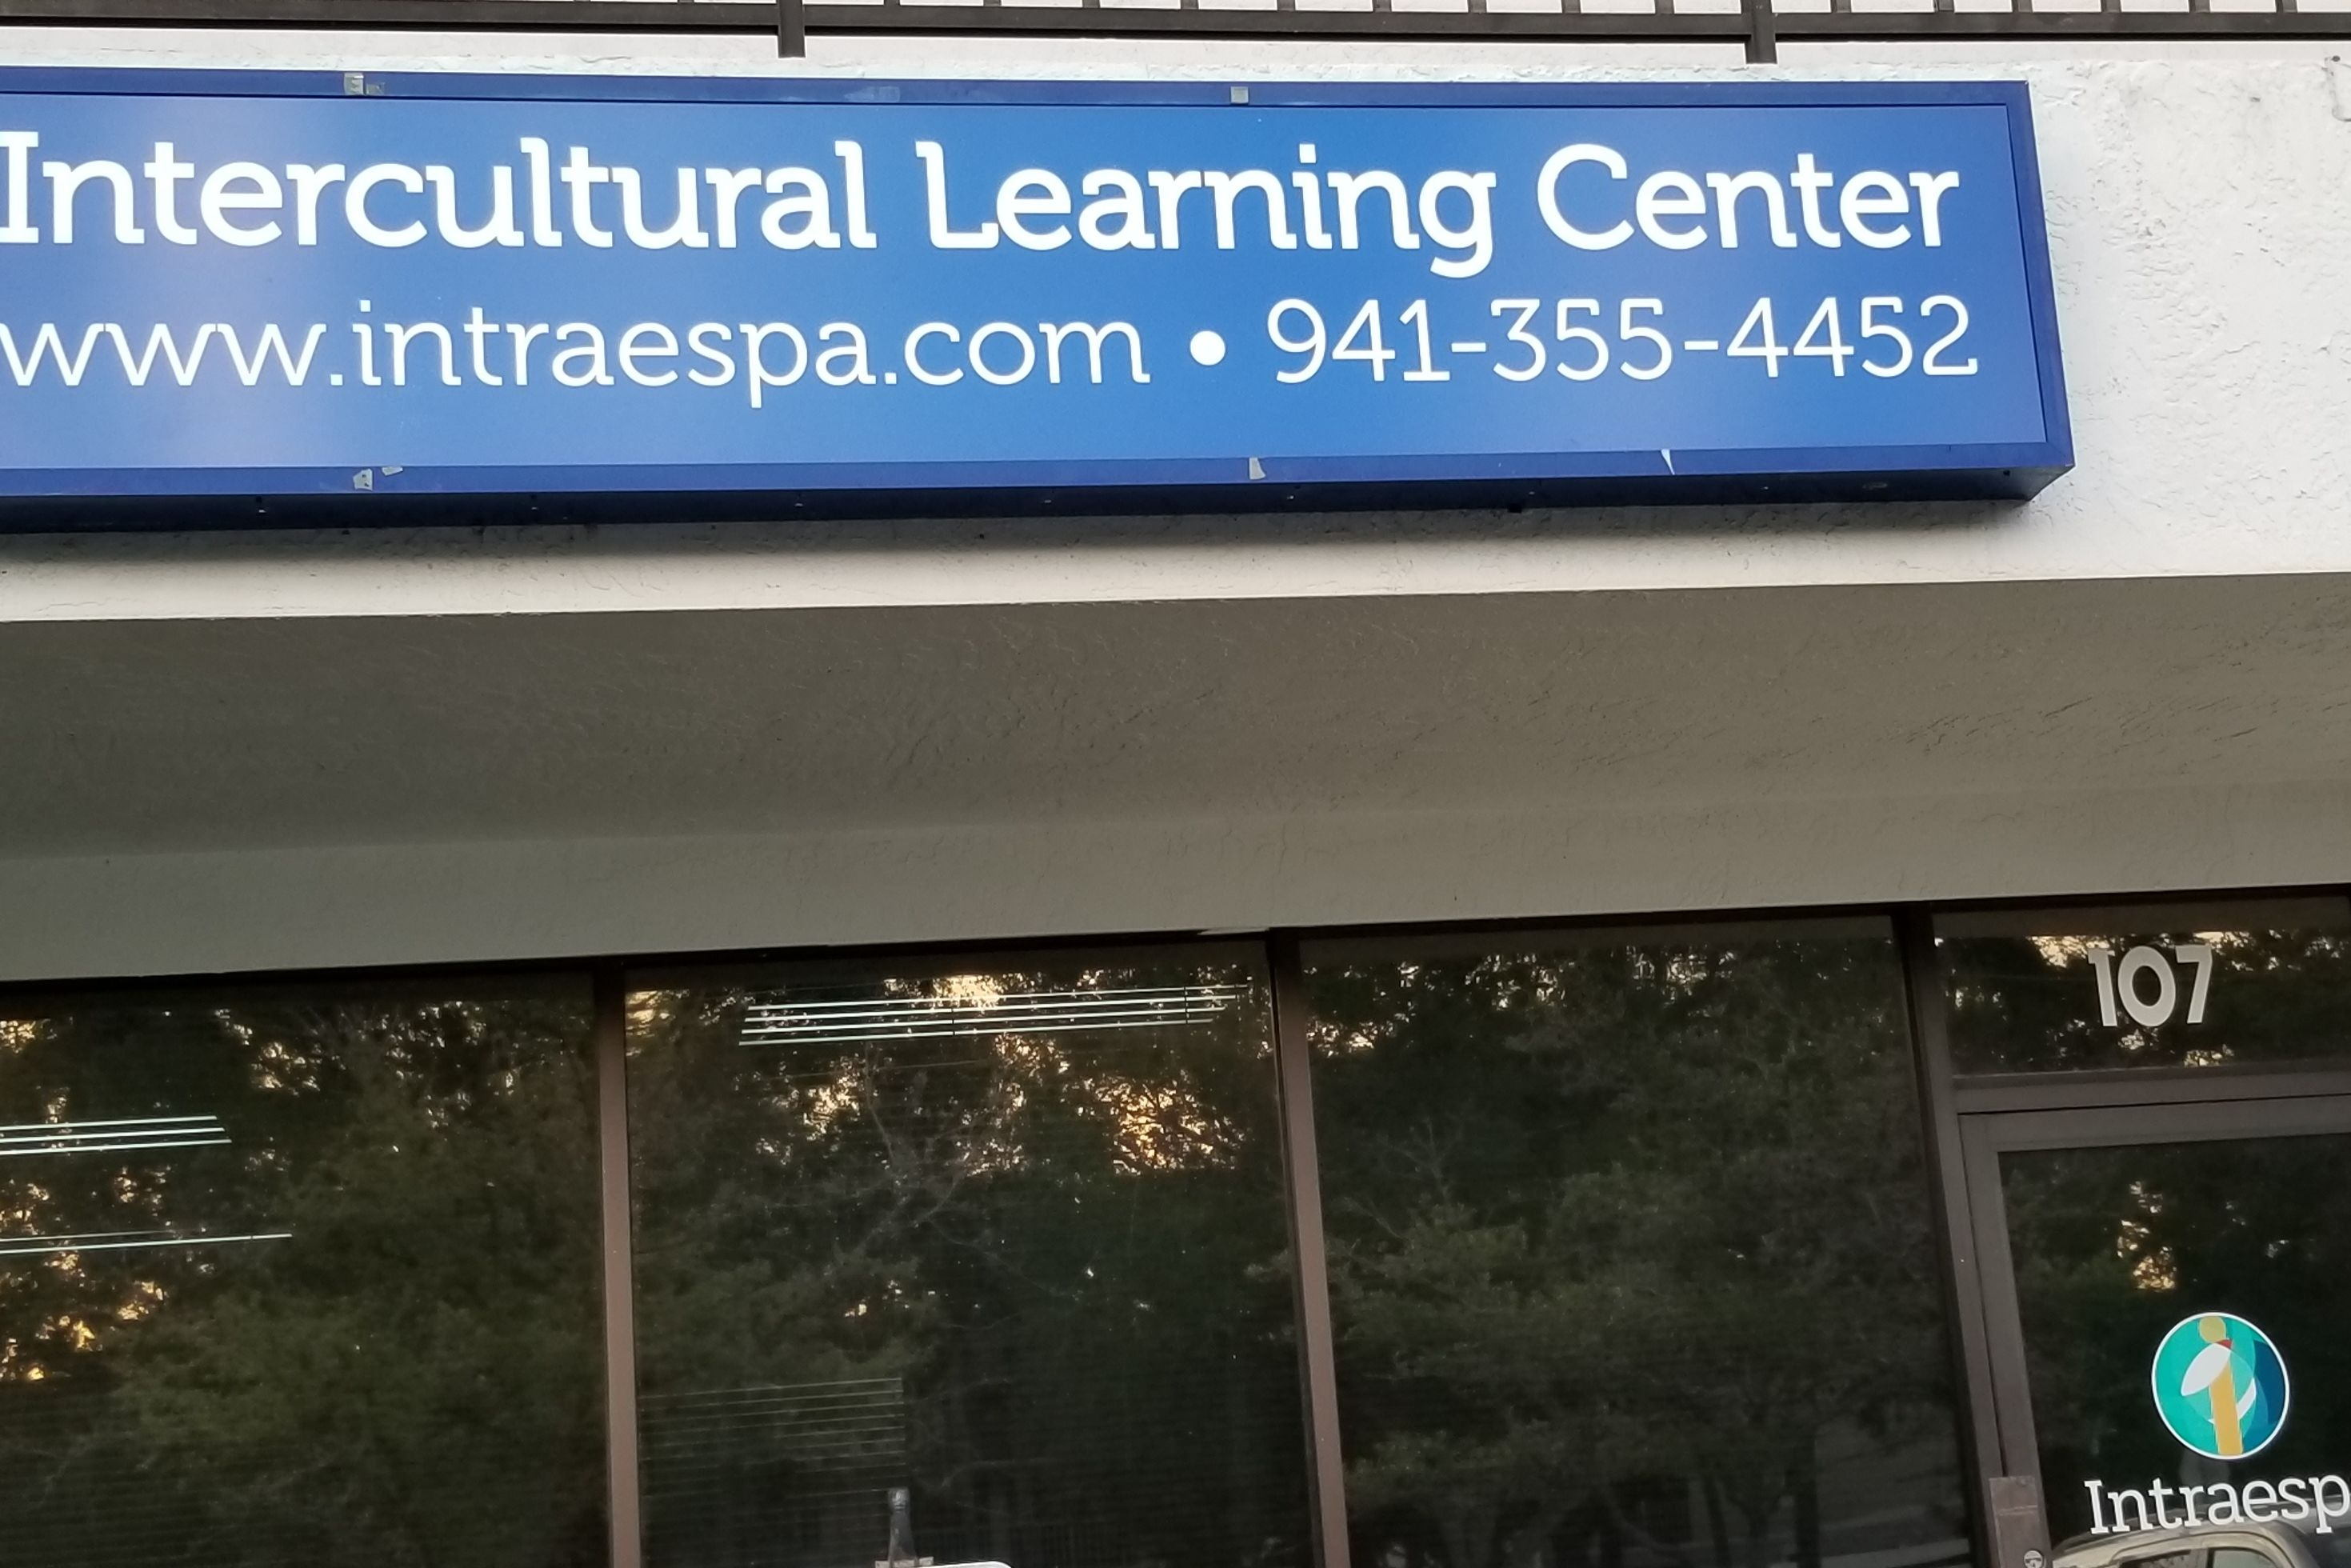 Intercultural learning center lcnmqo